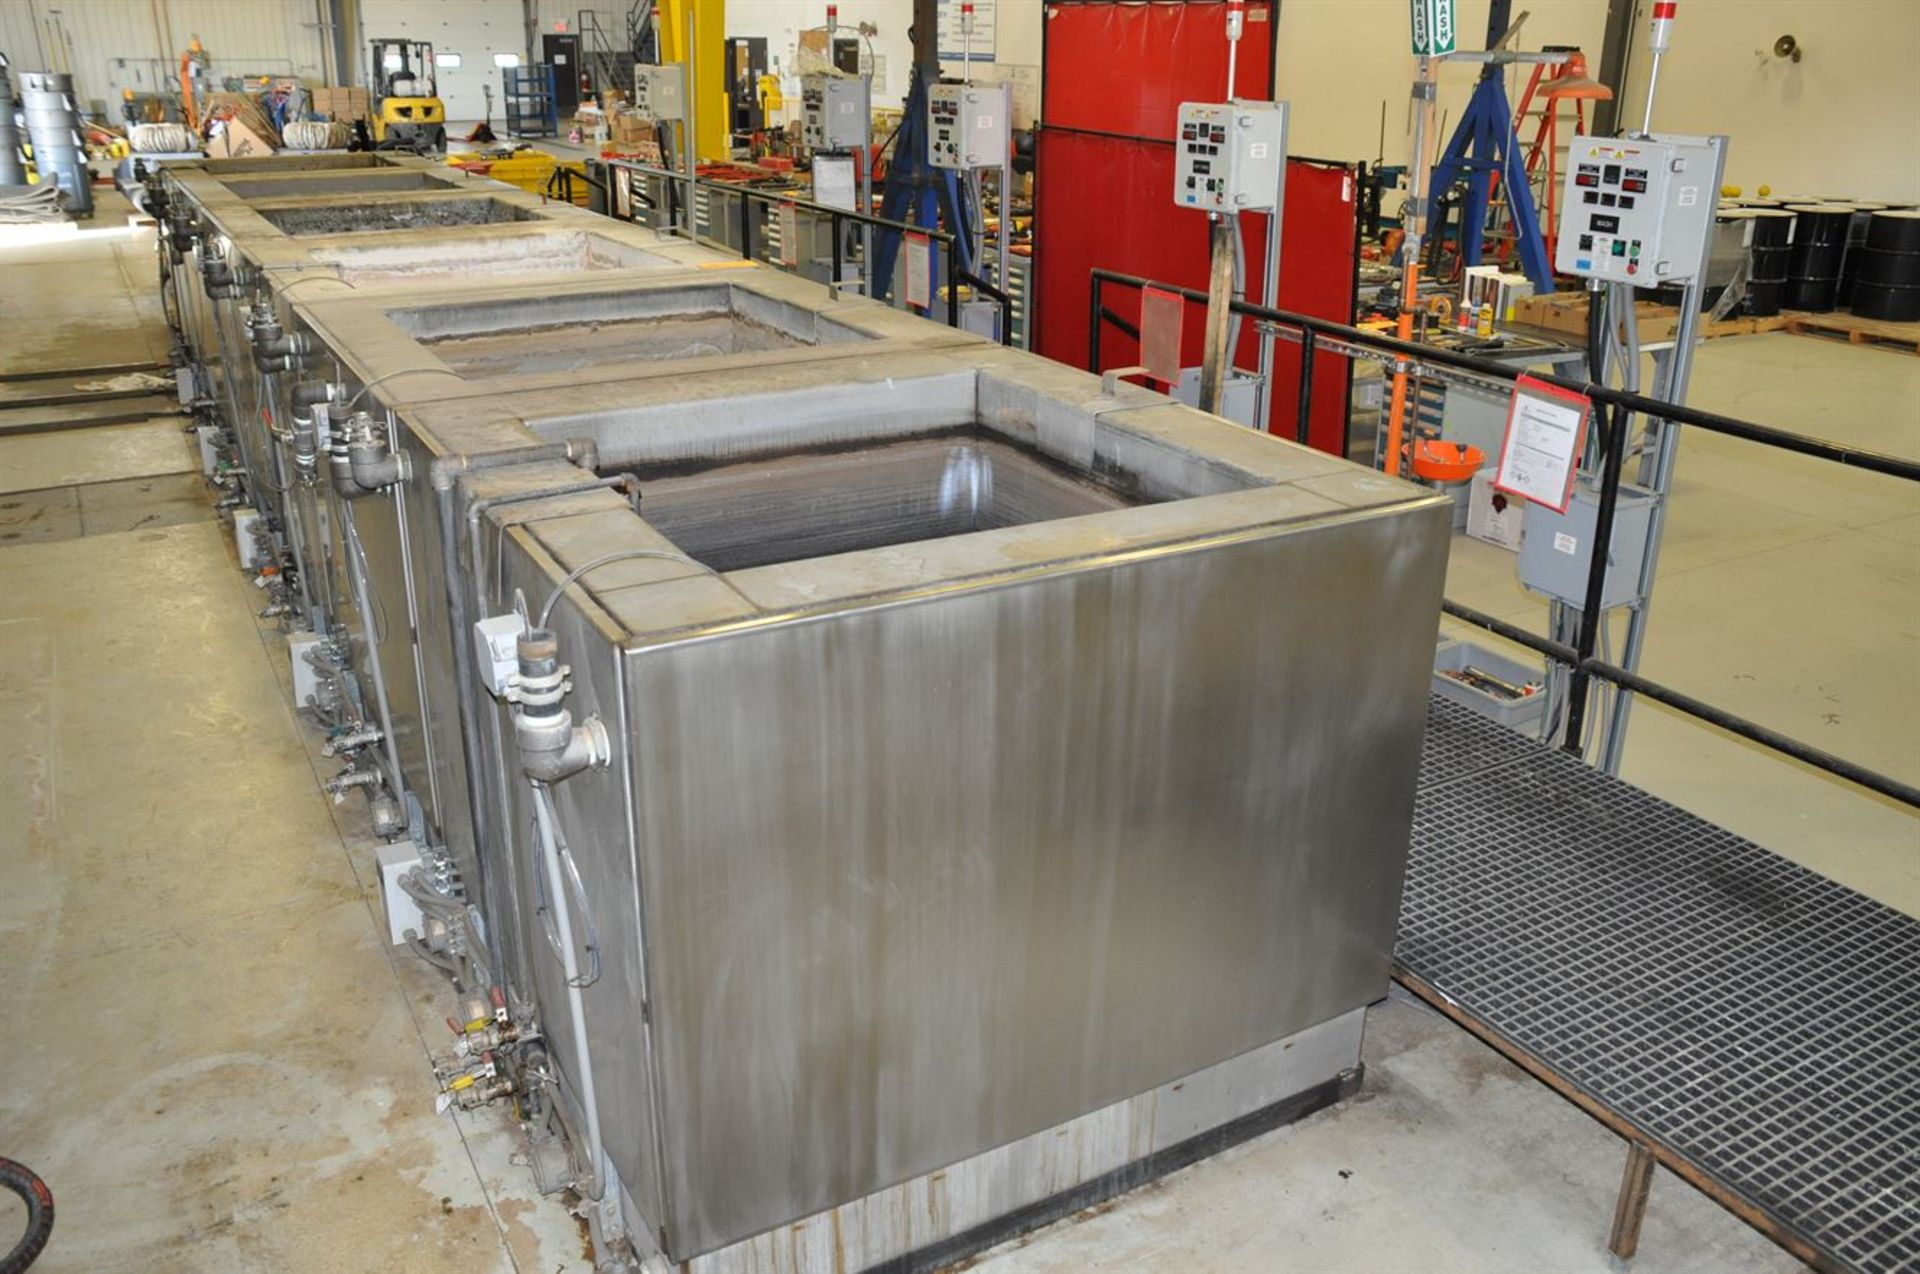 """2015 CUSTOM 6 Stainless Steel Jacketed Tank Phosphatizing System, w/ (6) 48"""" Cube Stainless Steel - Image 2 of 5"""